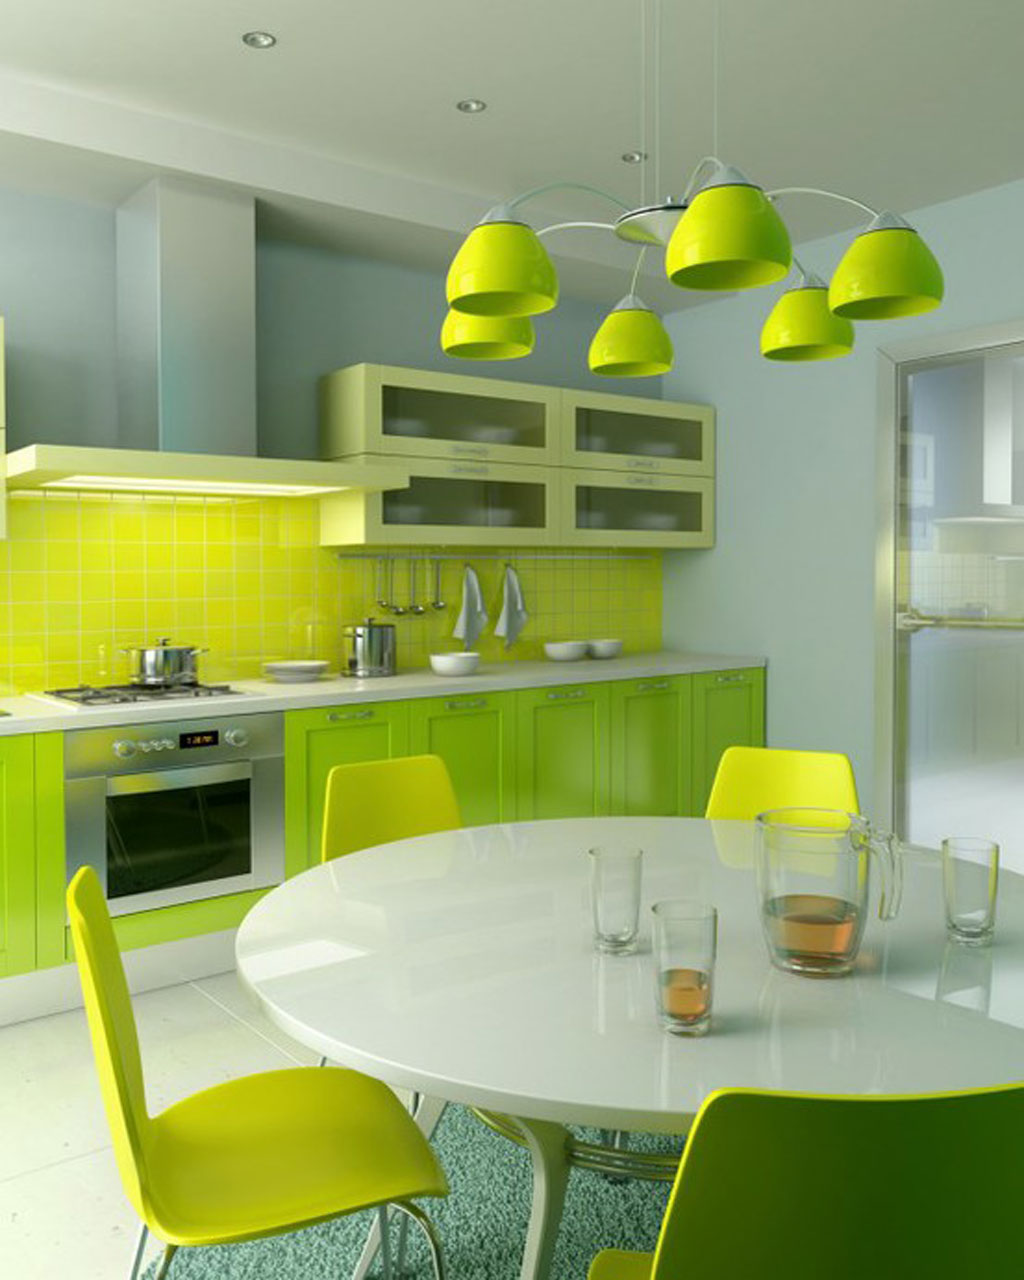 Brilliant Vintage Kitchen With Beautiful Lighting Ideas And Old Design: Green Side Chairs Vintage Kitchen With Beautiful Lighting Ideas